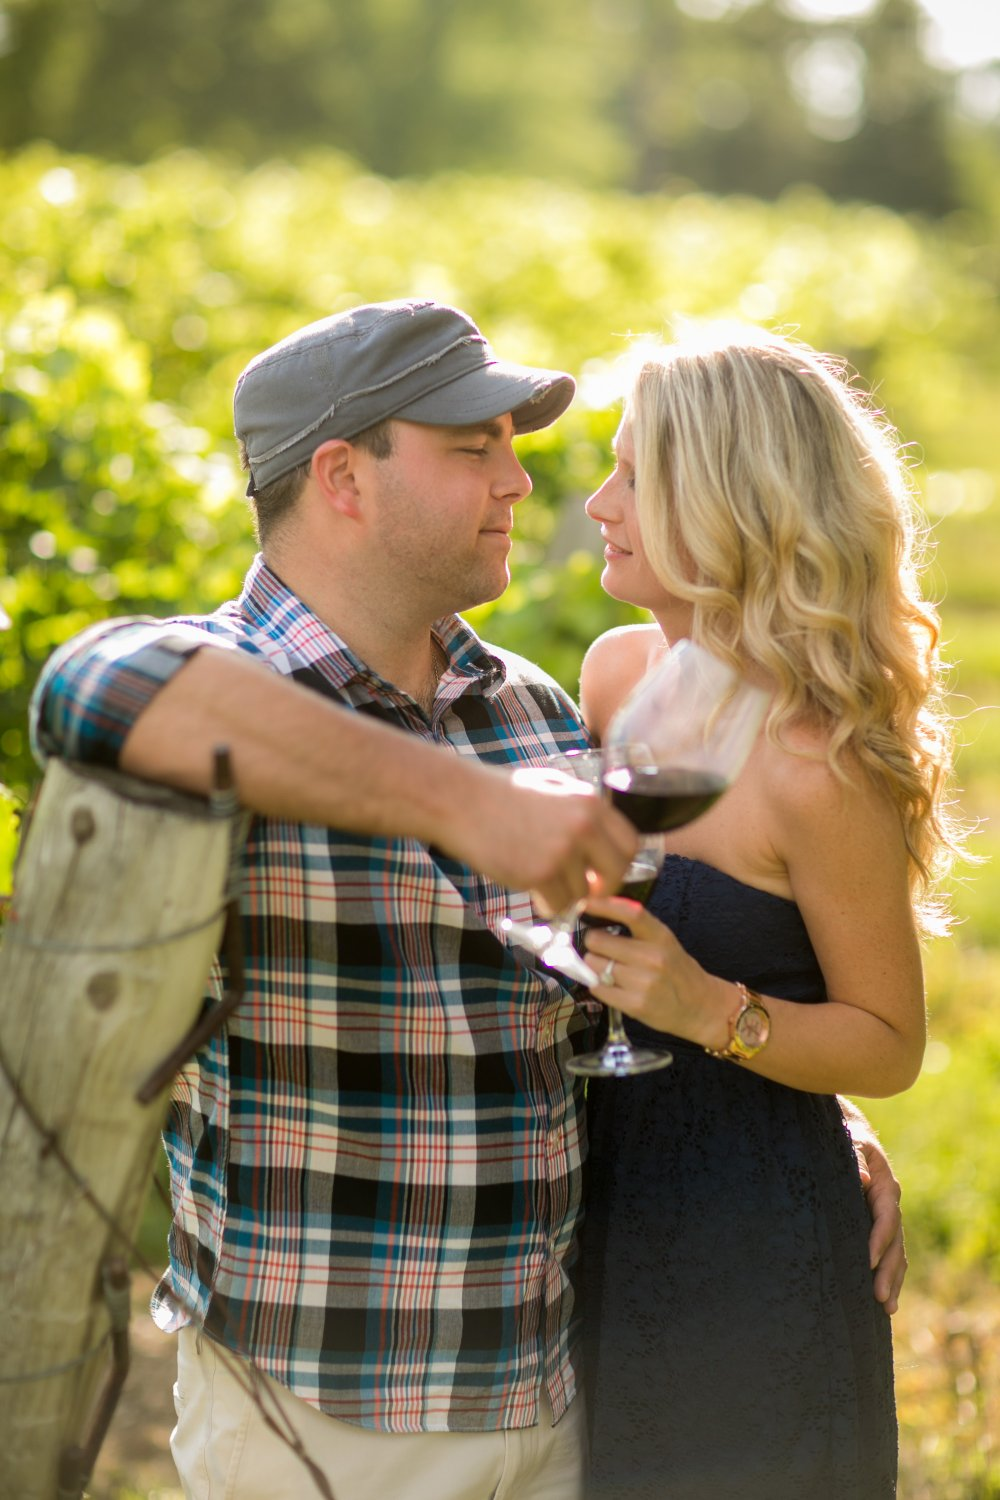 JF Hannigan Photography Engagement Session: Jenna and Brad: from shore to shore 4